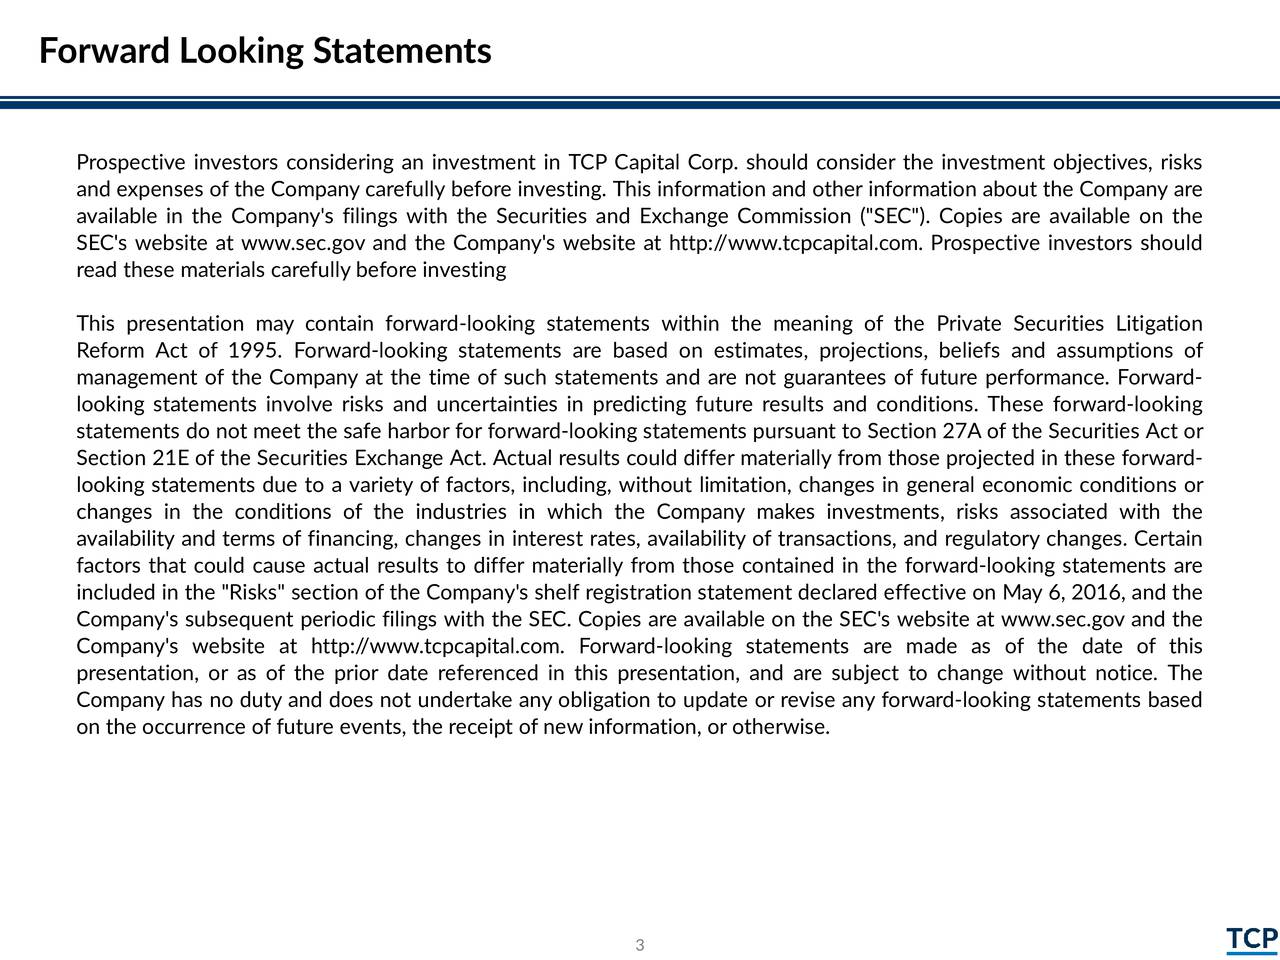 """Prospective investors considering an investment in TCP Capital Corp. should consider the investment objectives, risks and expenses of the Company carefully beforeinvesting. This information and other information about the Company are available in the Company's filings with the Securities and Exchange Commission (""""SEC""""). Copies are available on the SEC's website at www.sec.gov and the Company's website at http://www.tcpcapital.com. Prospective investors should read these materials carefully beforeinvesting This presentation may contain forward-looking statements within the meaning of the Private Securities Litigation Reform Act of 1995. Forward-looking statements are based on estimates, projections, beliefs and assumptions of management of the Company at the time of such statements and are not guarantees of future performance. Forward- looking statements involve risks and uncertainties in predicting future results and conditions. These forward-looking statements do not meet the safe harbor for forward-looking statements pursuant to Section 27A of the Securities Act or Section 21E of the Securities Exchange Act. Actual results could differ materially from those projected in these forward- looking statements due to a variety of factors, including, without limitation, changes in general economic conditions or changes in the conditions of the industries in which the Company makes investments, risks associated with the availability and terms of financing, changes in interest rates, availability of transactions, and regulatory changes. Certain factors that could cause actual results to differ materially from those contained in the forward-looking statements are included in the """"Risks"""" section of the Company's shelf registration statement declared effective on May 6, 2016, and the Company's subsequent periodic filings with the SEC. Copies are available on the SEC's website at www.sec.gov and the Company's website at http://www.tcpcapital.com. Forward-looking statements are """